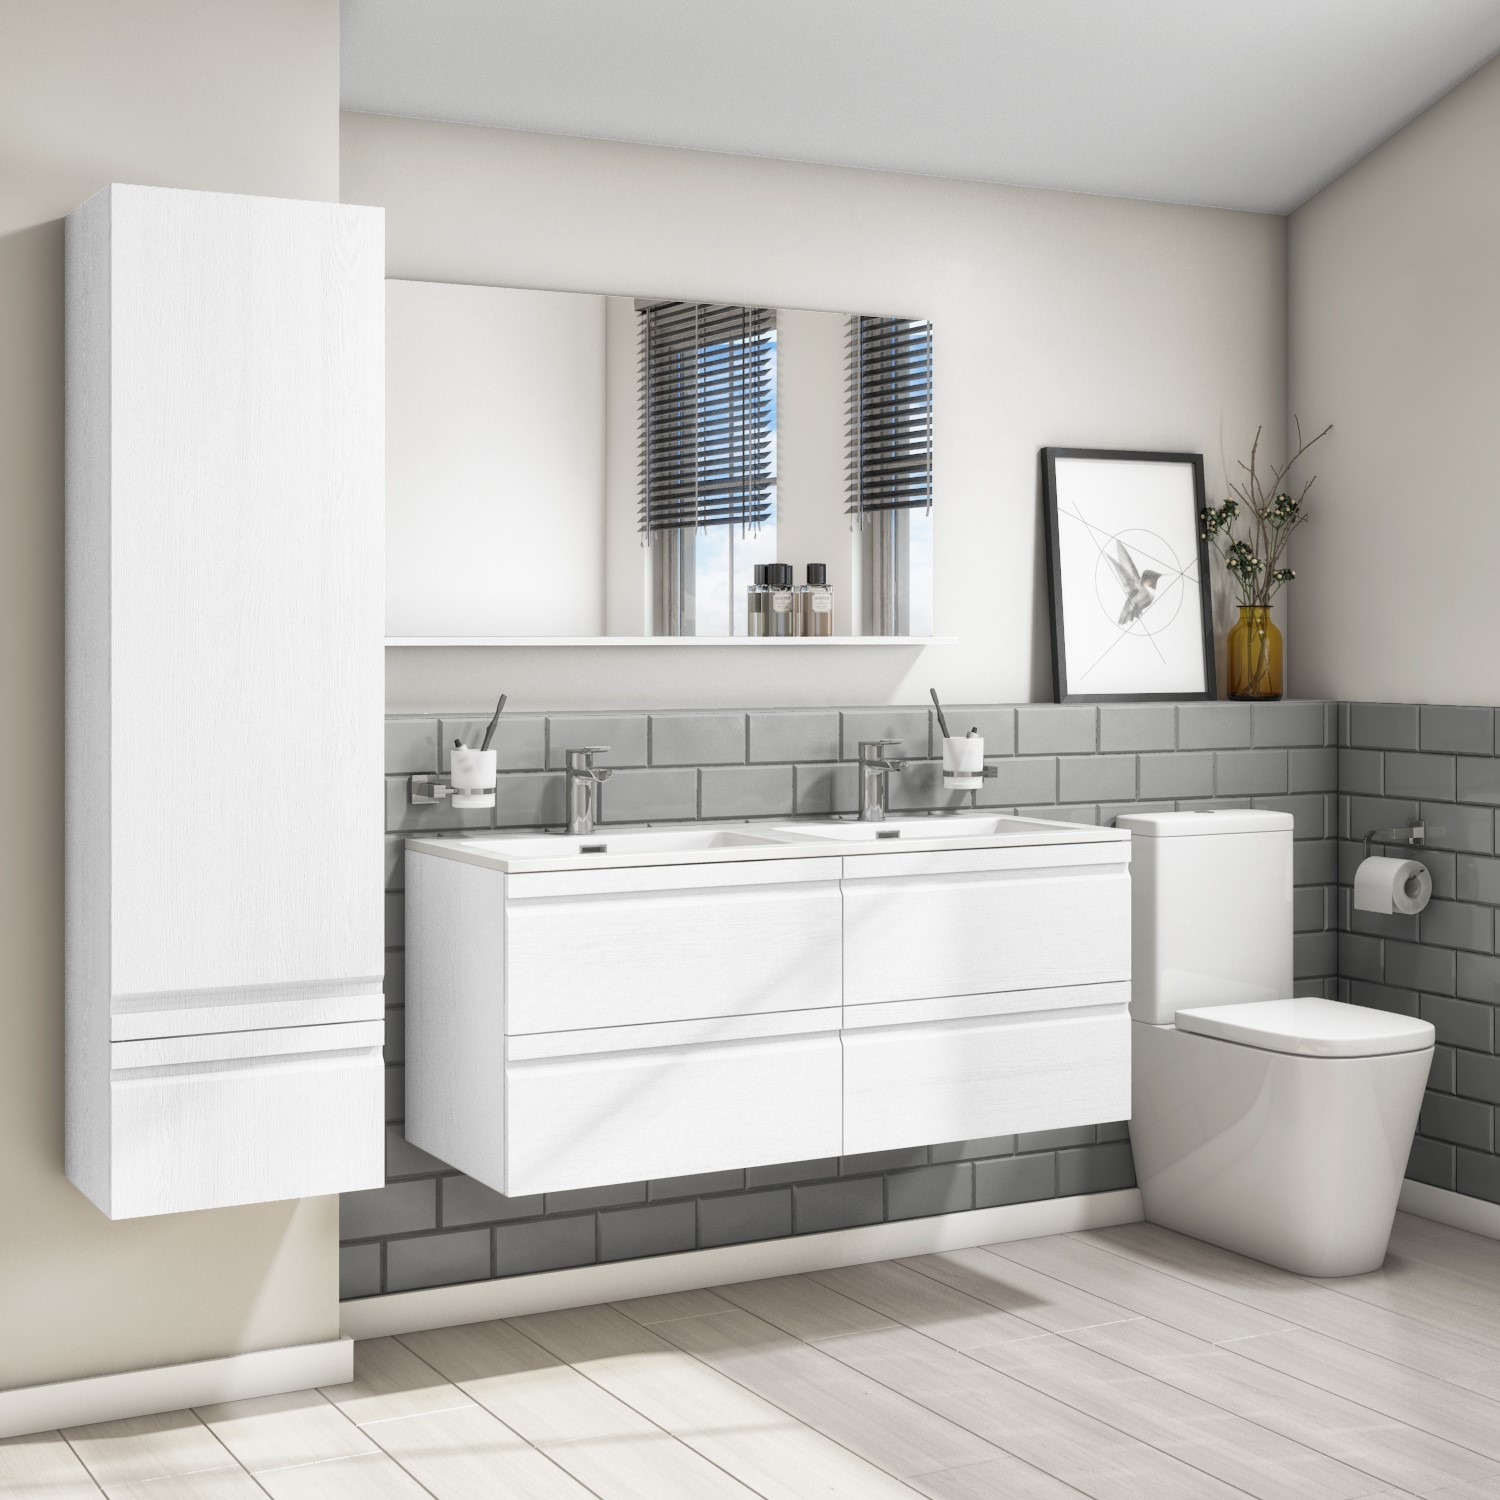 1200mm white wall hung double vanity unit with basin boston